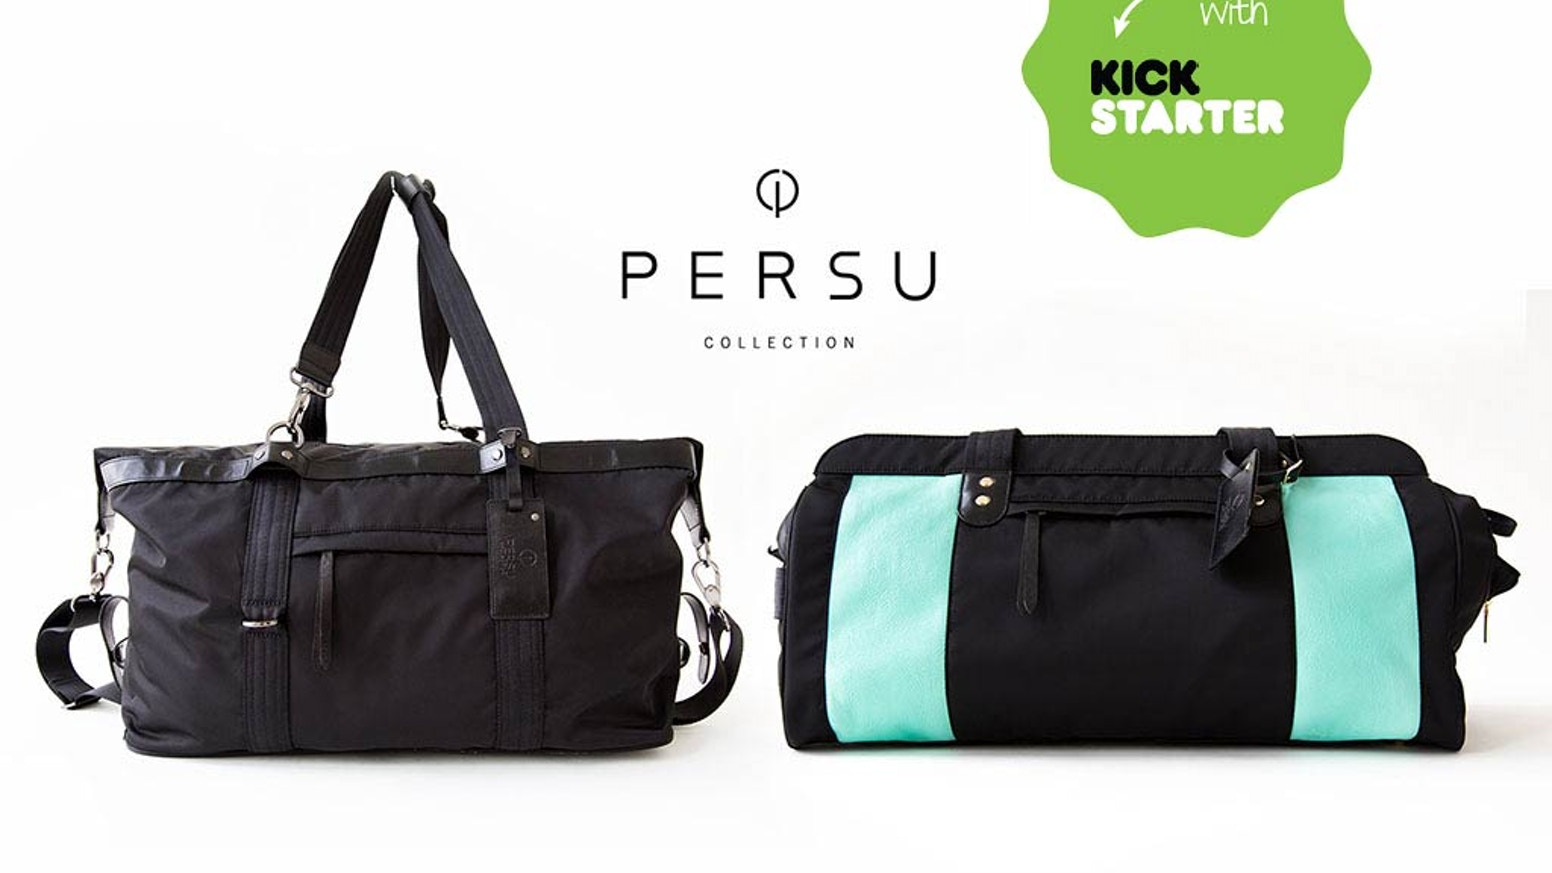 Functional, sleek, and durable luxe athletic/weekender bags designed to simplify your life while making you look and feel your best. The only bags with a removable and washable interior.